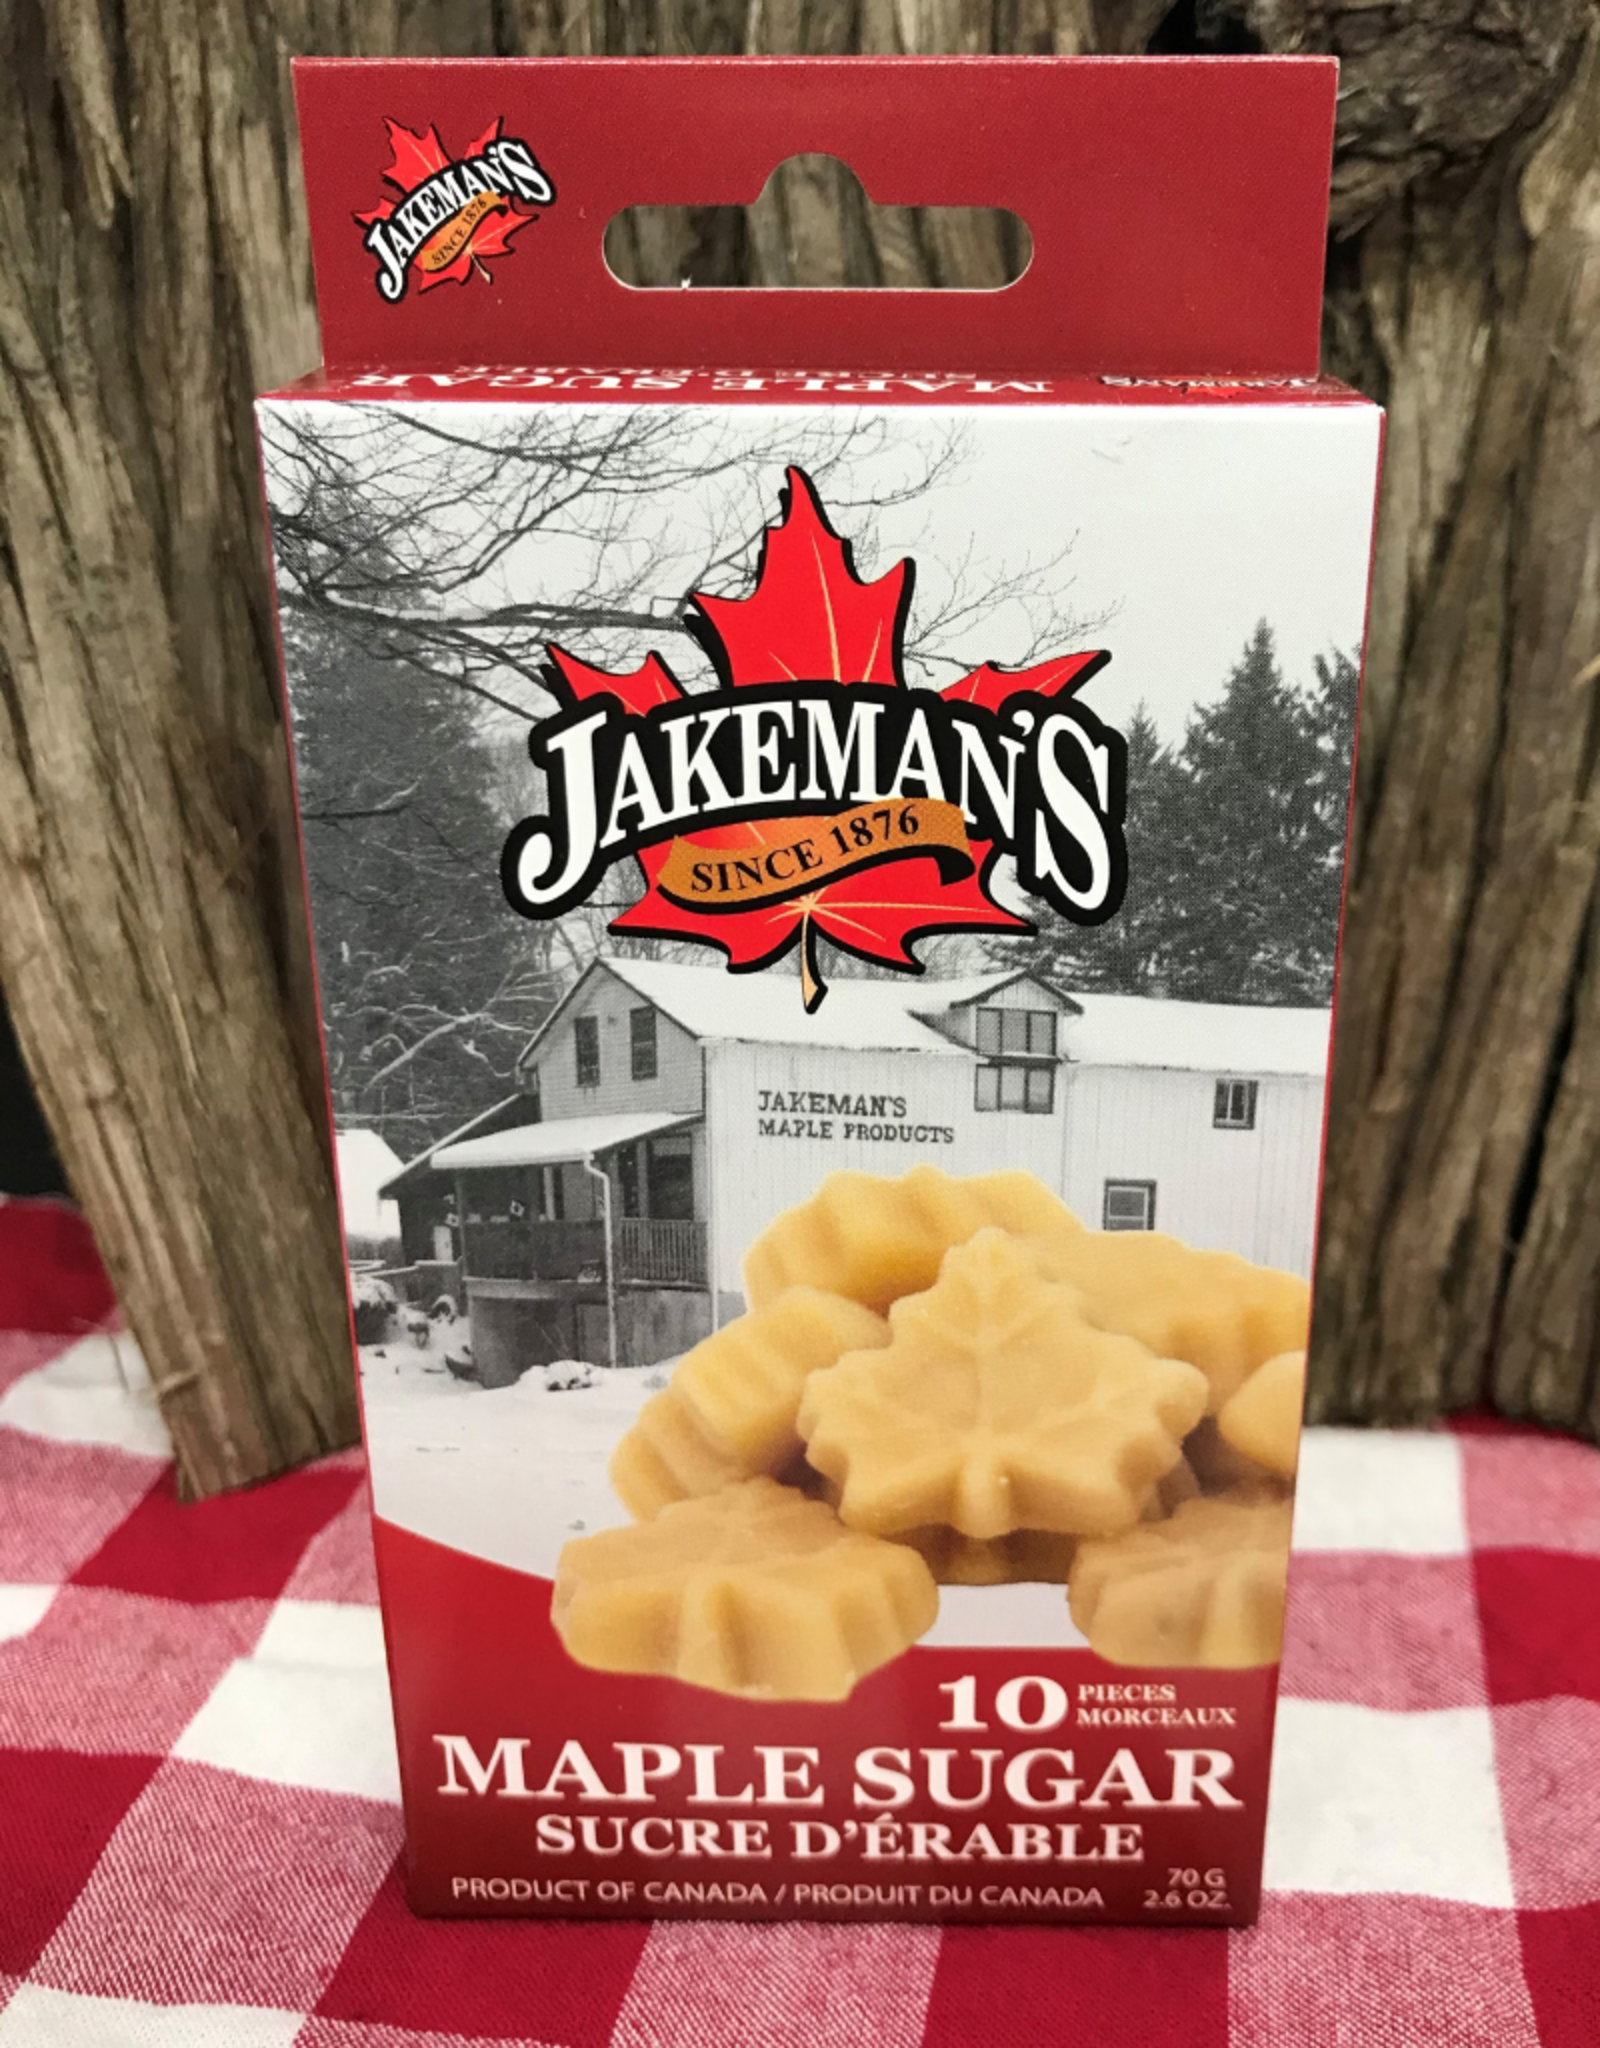 Jakemans Maple Sugar Candy